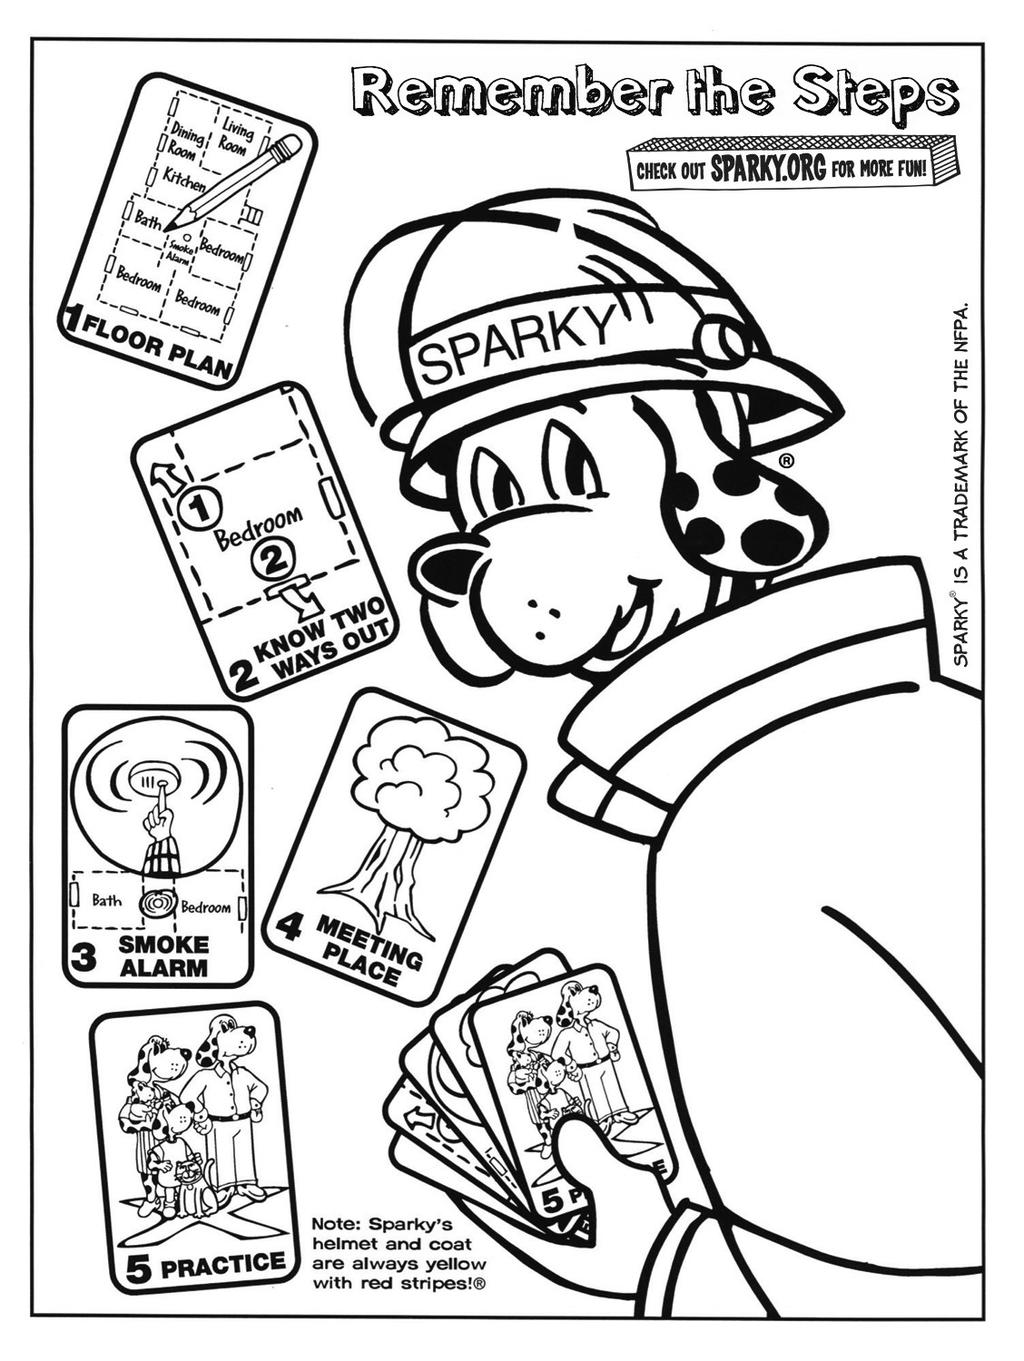 Free Sparky The Fire Dog Coloring Pages Copy Professional printable